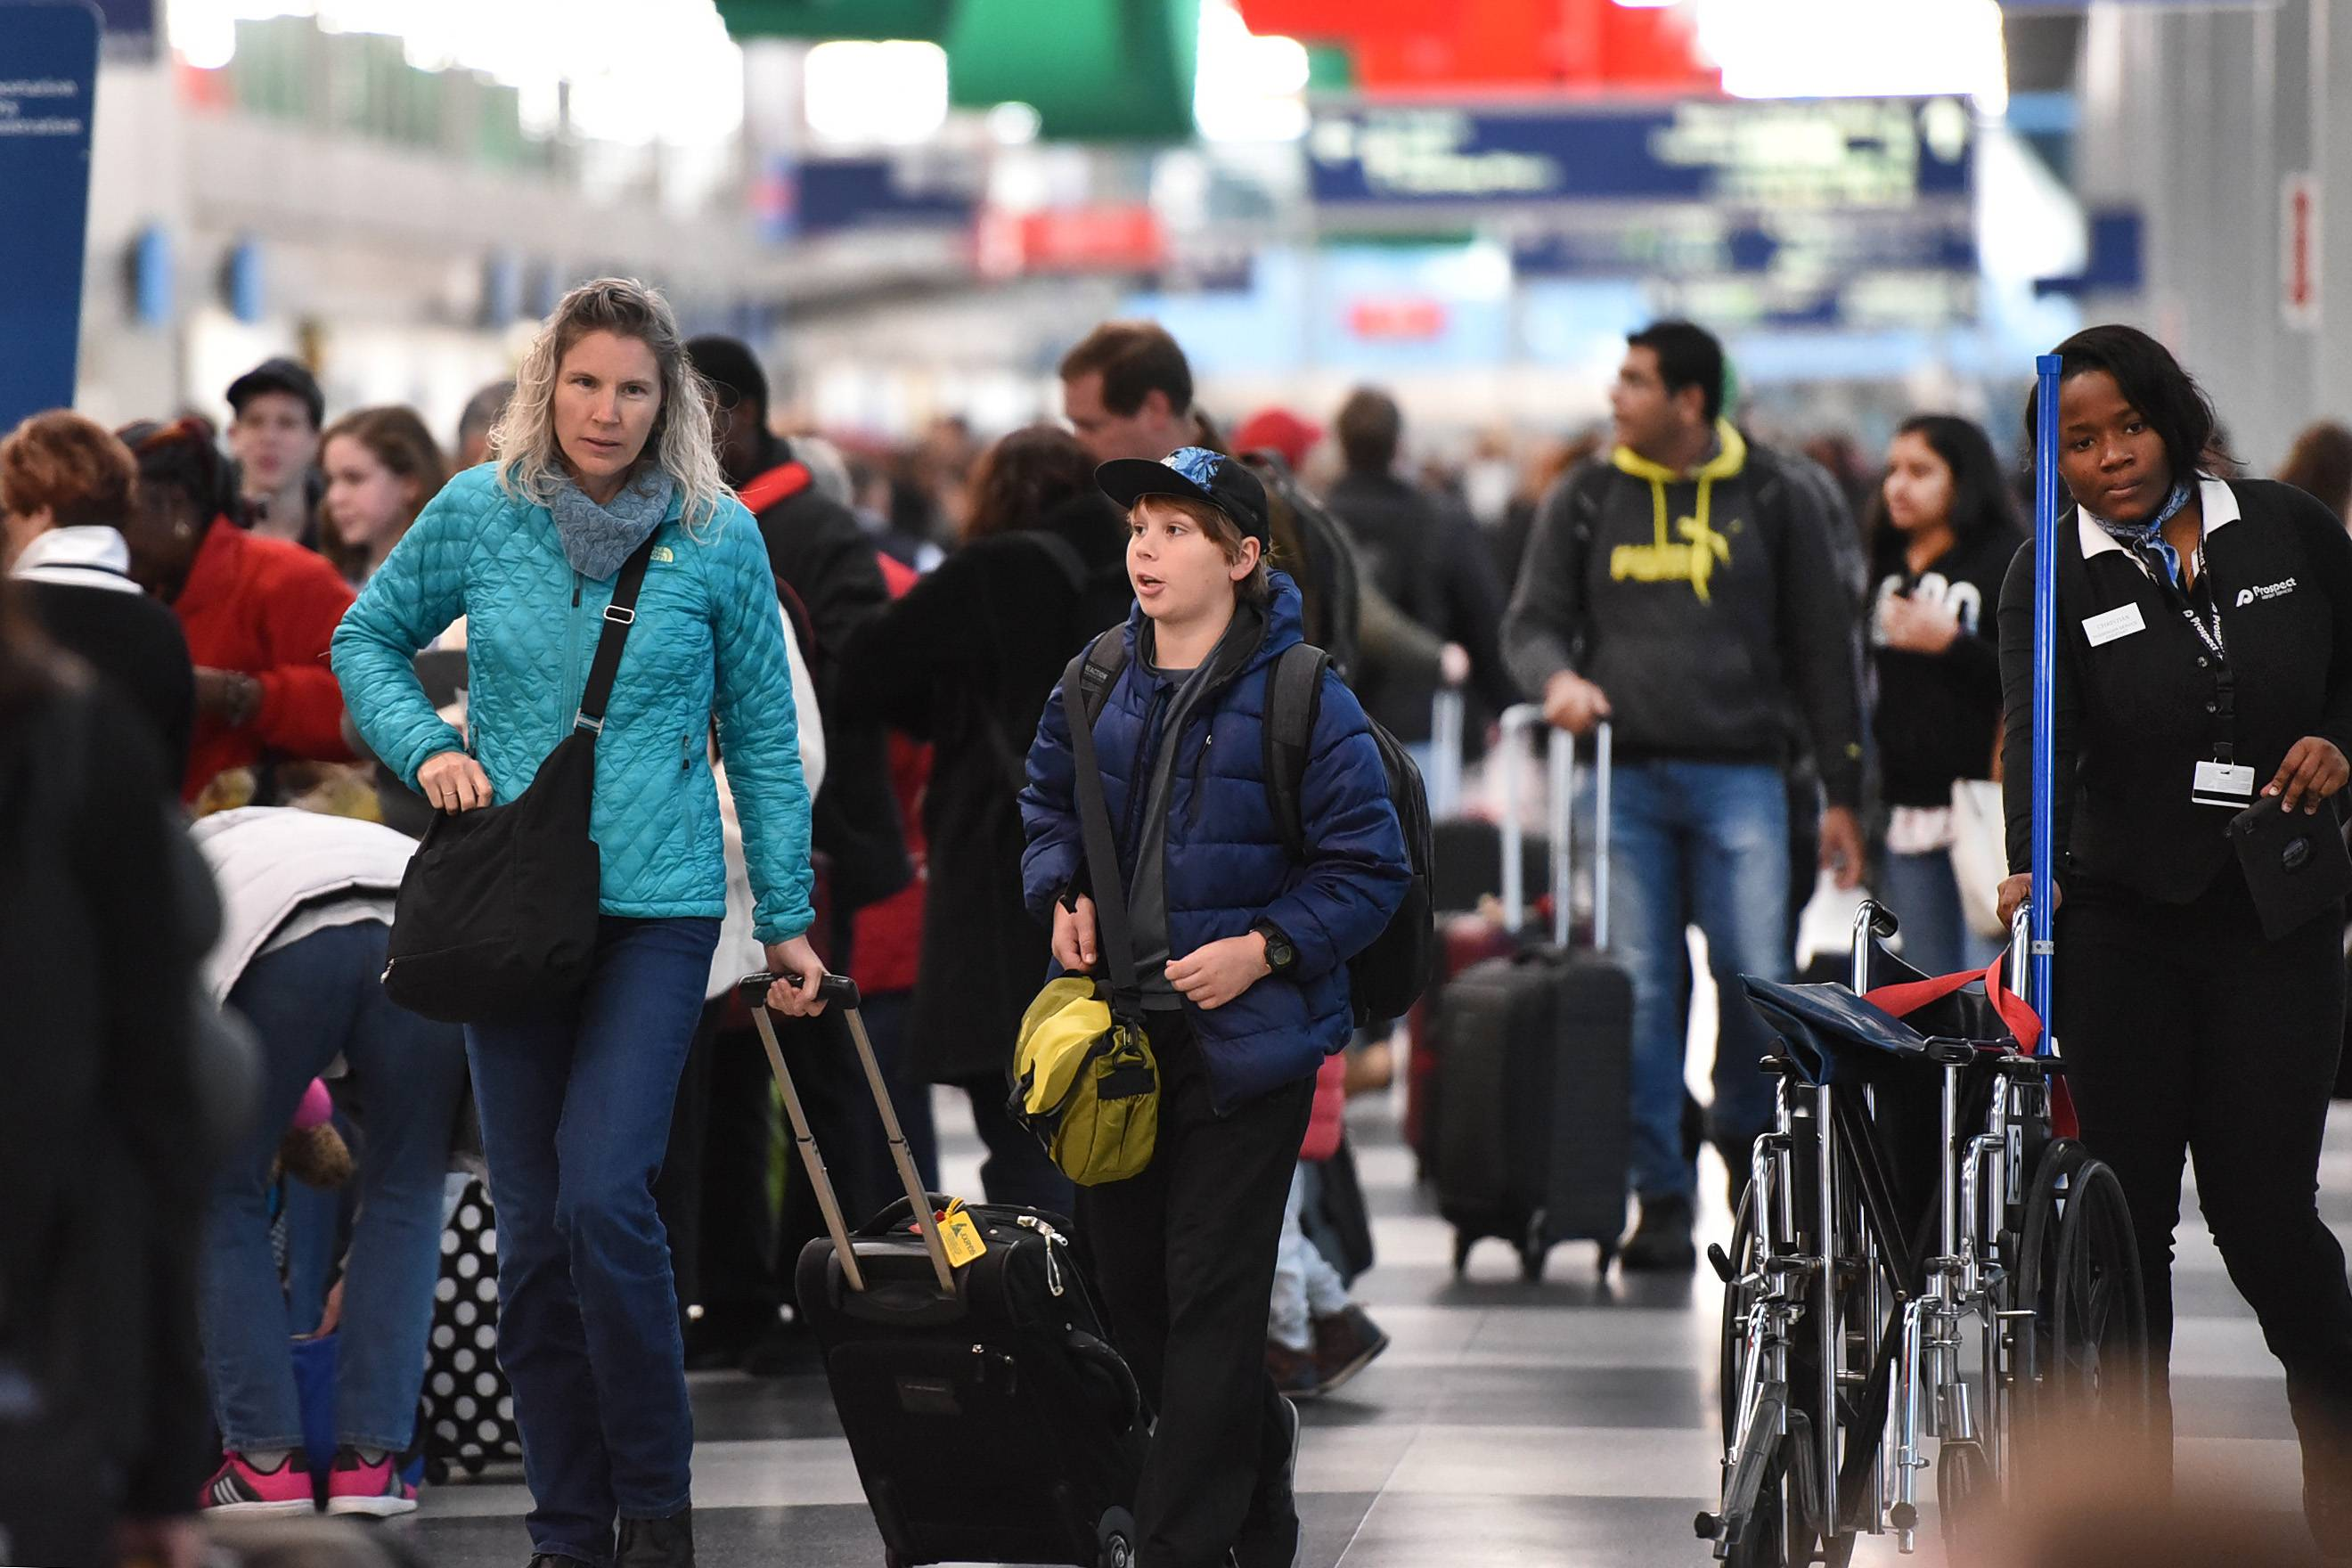 O'Hare International Airport is the second busiest in the U.S., the FAA reported Wednesday.